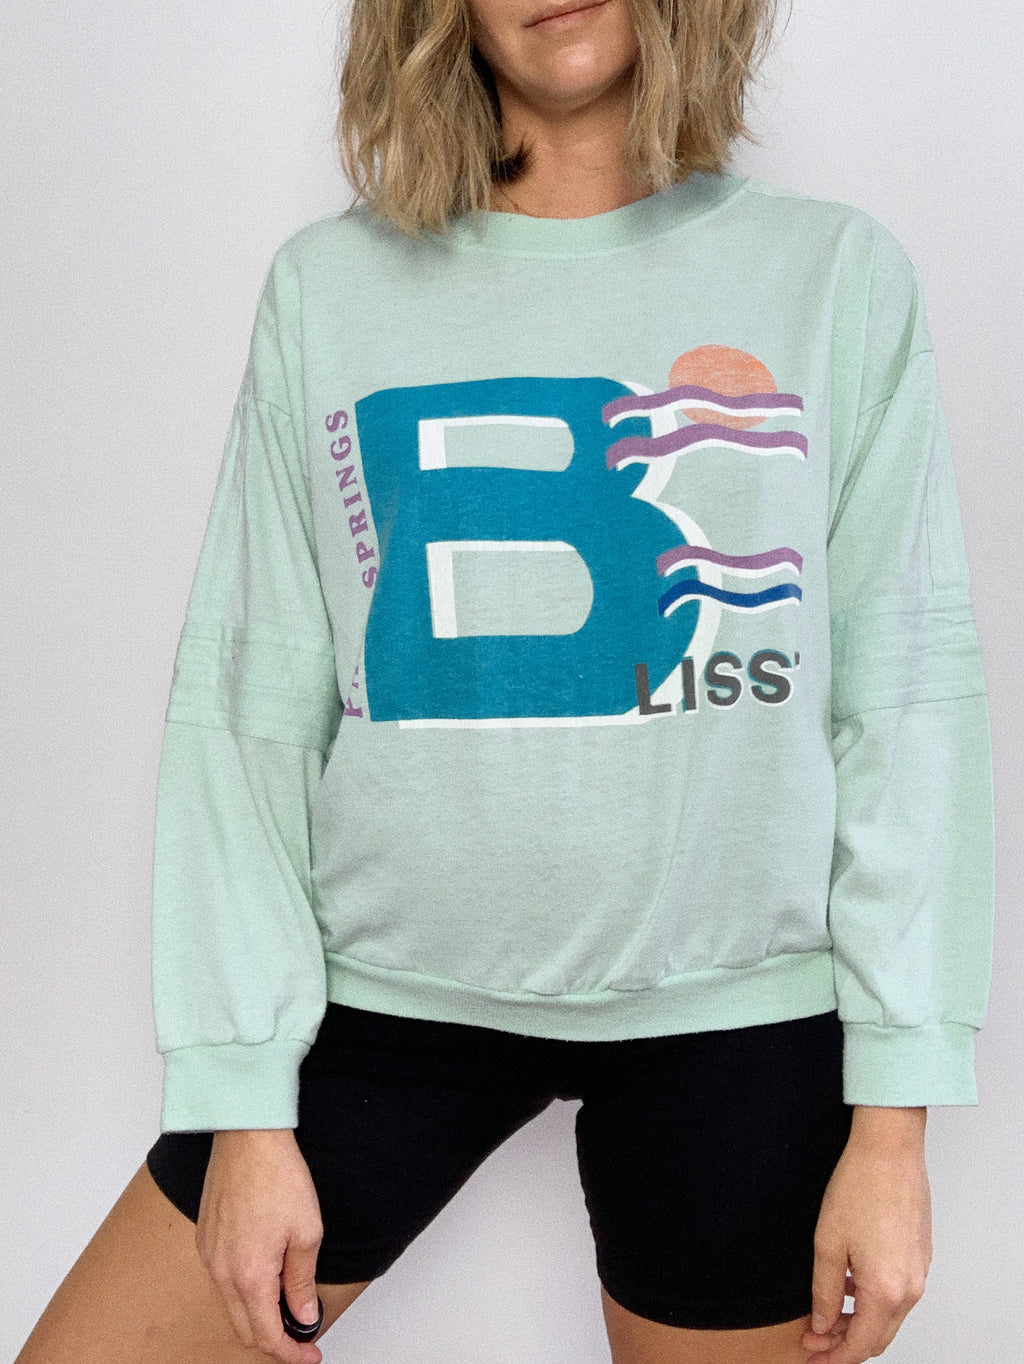 PALM SPRINGS BLISS TEE / SMALL